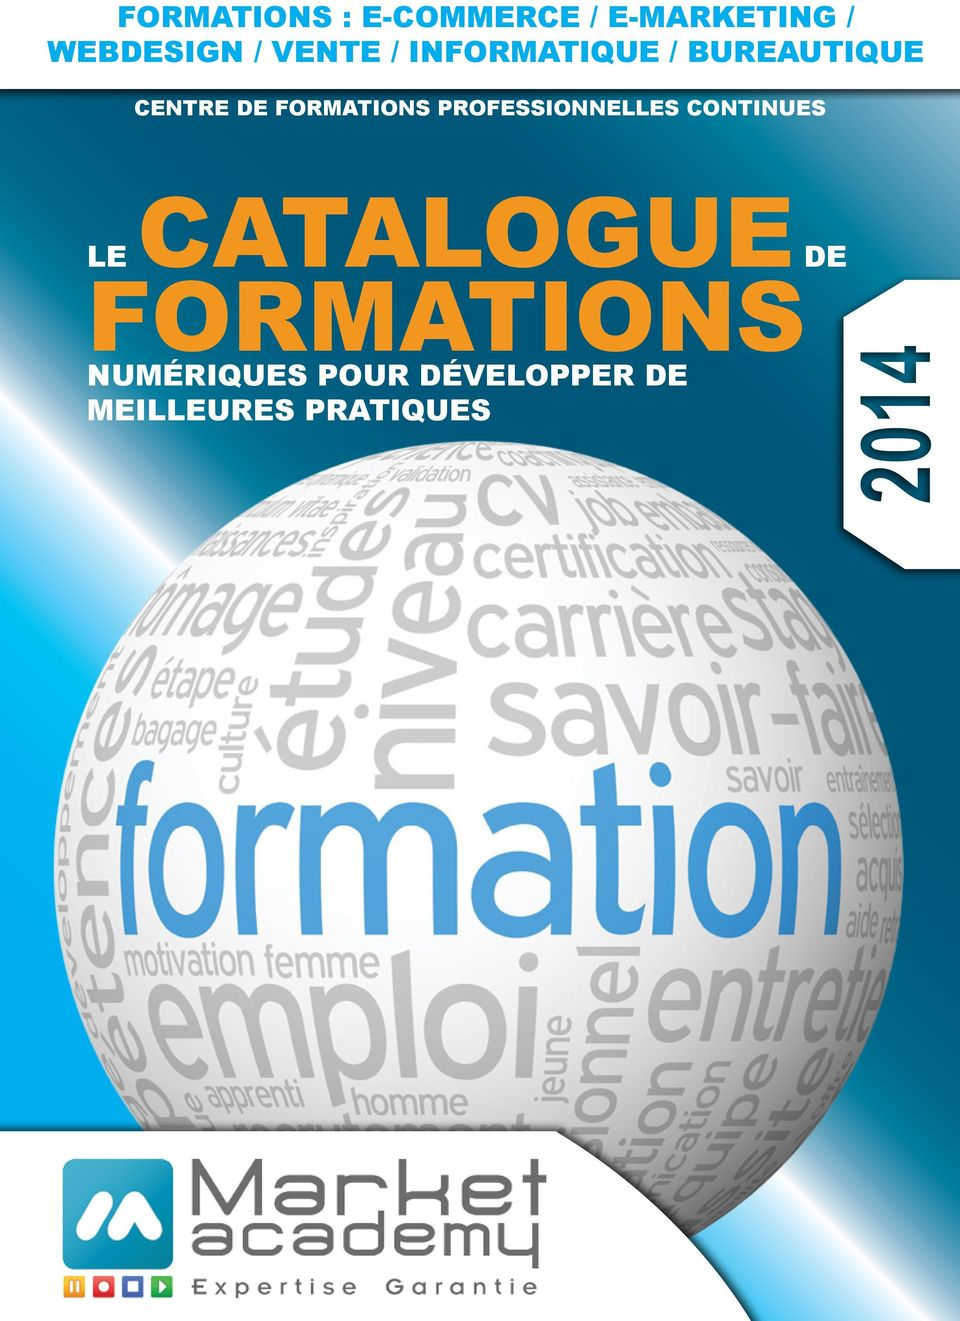 FORMATIONS PROFESSIONNELLES CONTINUES LE CATALOGUE